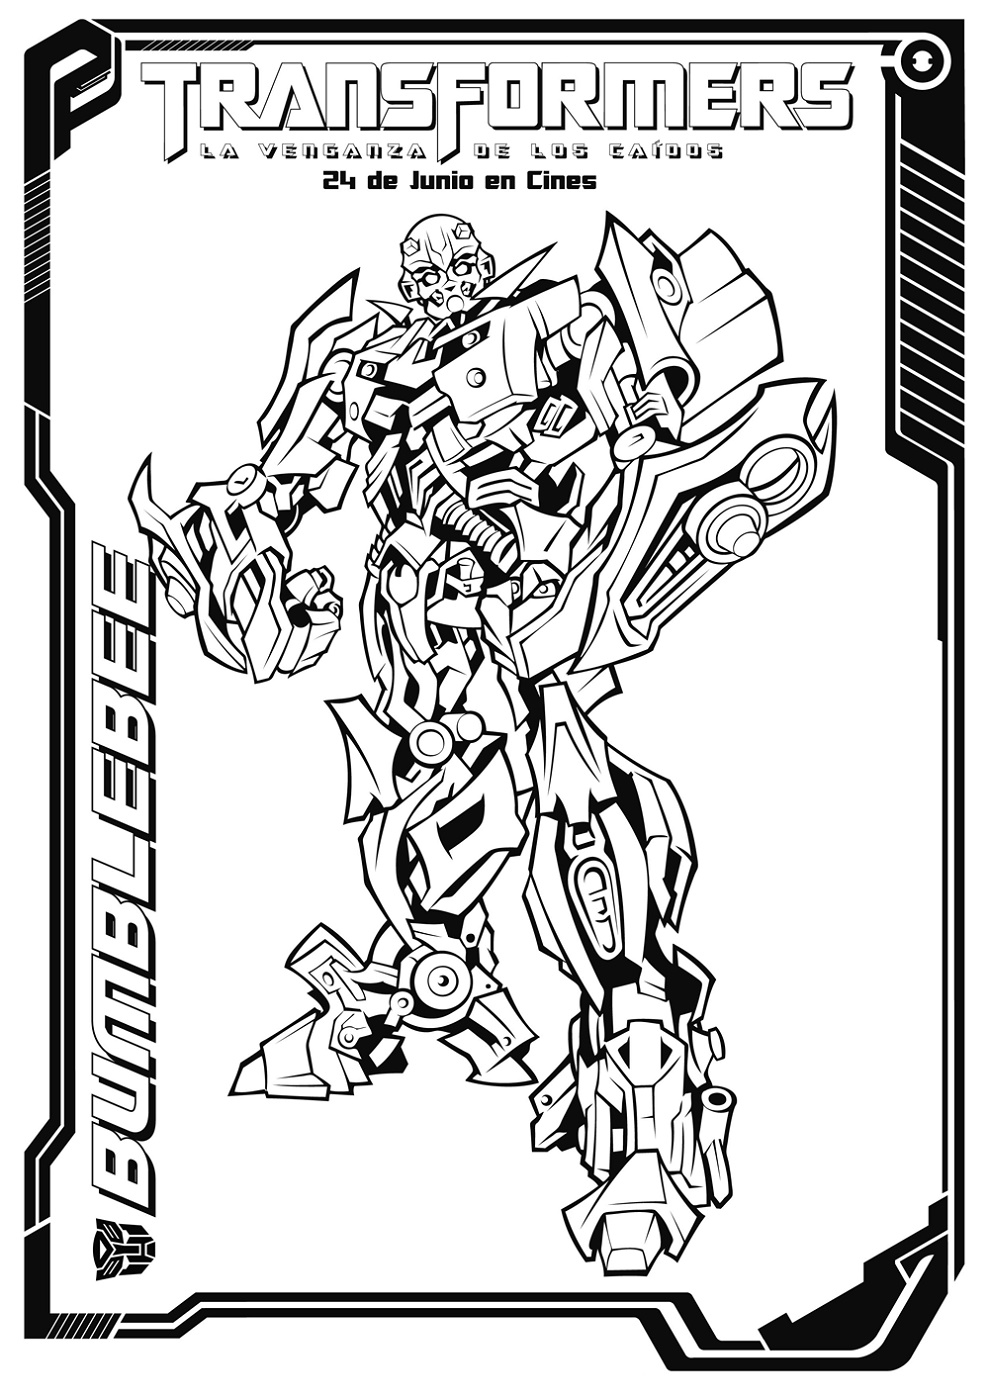 bumblebee transformer coloring pictures the transformers bumblebee colouring image pictures transformer coloring bumblebee